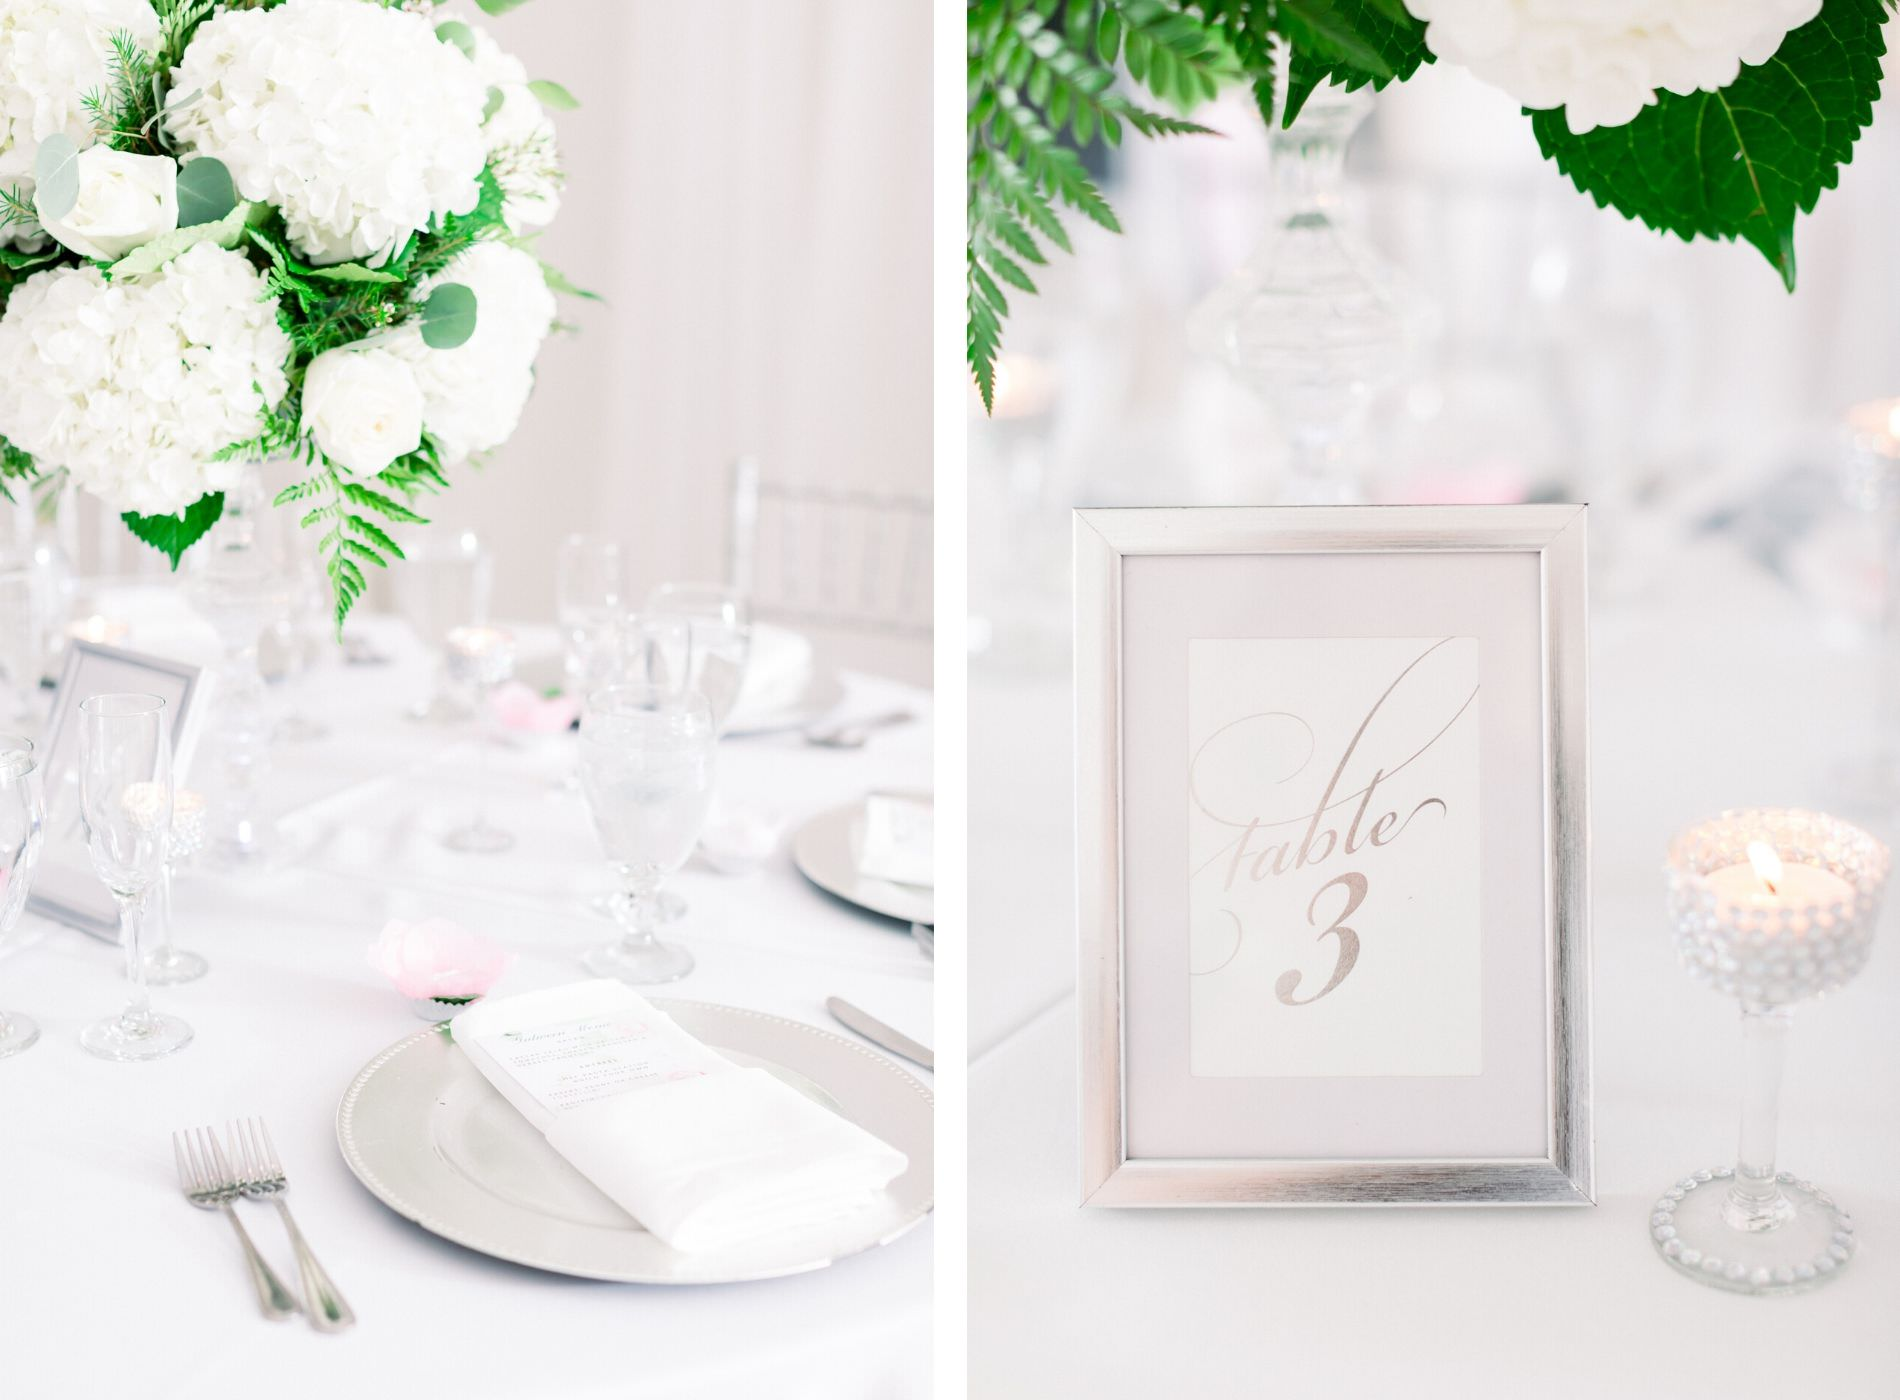 Garden Glam Classic Wedding Reception Decor, White Hydrangeas and Roses with Greenery Floral Centerpiece, Silver Fram Table Number, Silver Chargers | Wedding Photographer Shauna and Jordon Photography